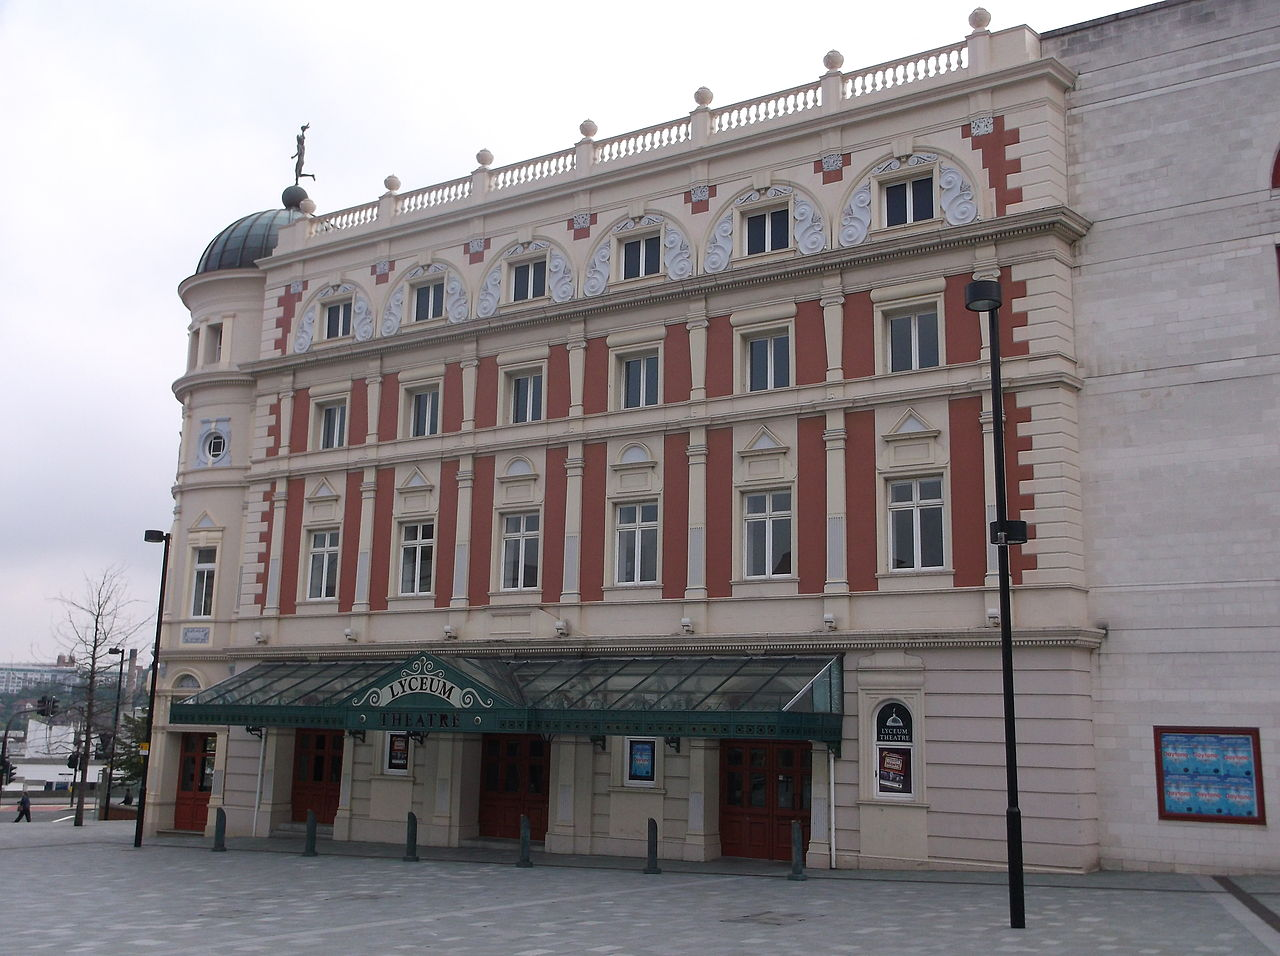 10 Iconic Buildings that define the skyline of Sheffield - Lyceum Theatre